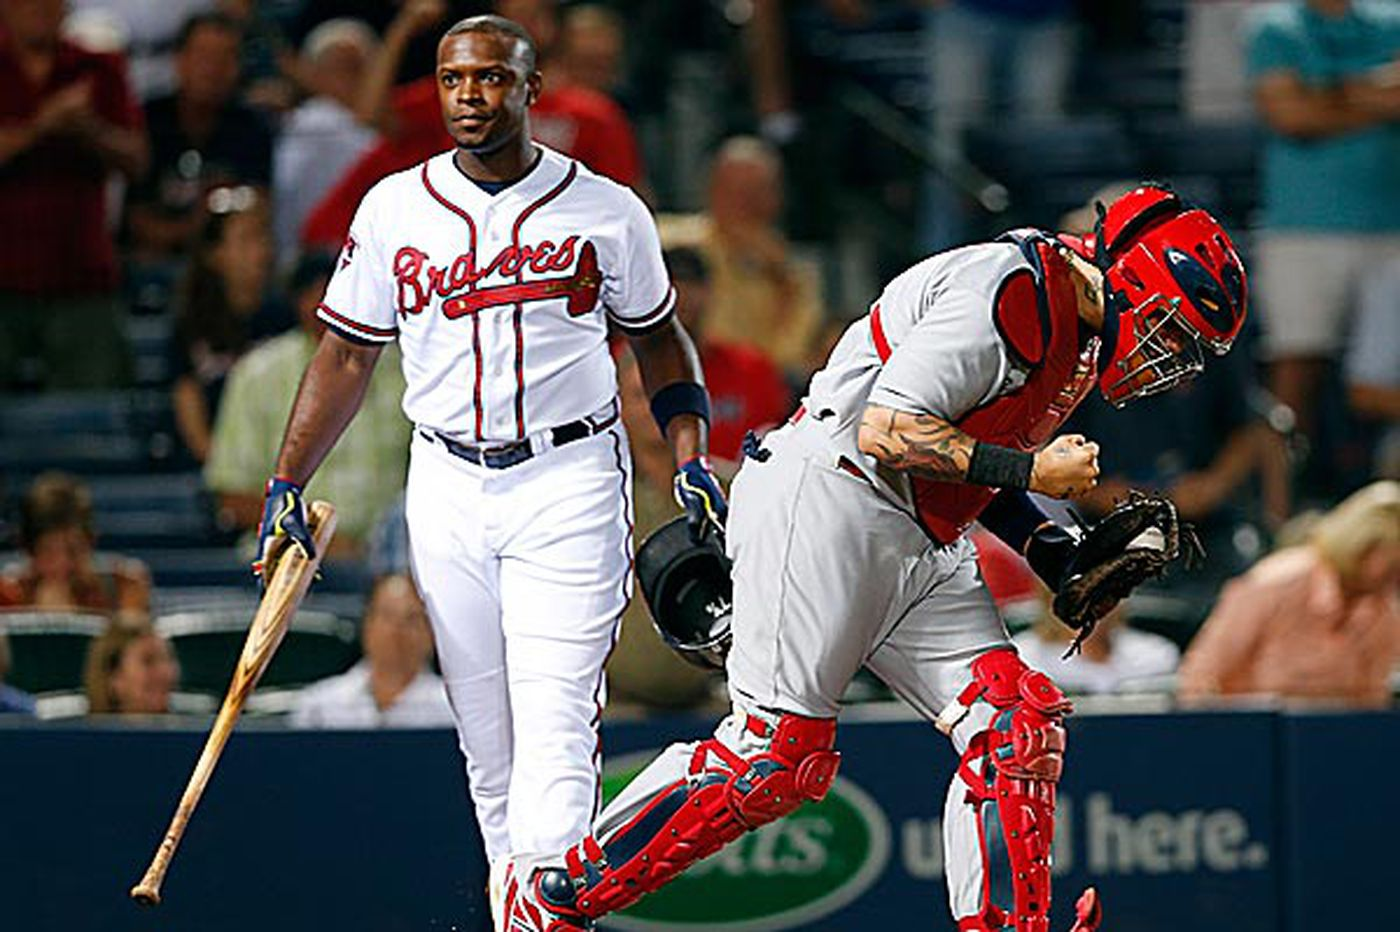 Braves lose seventh in a row